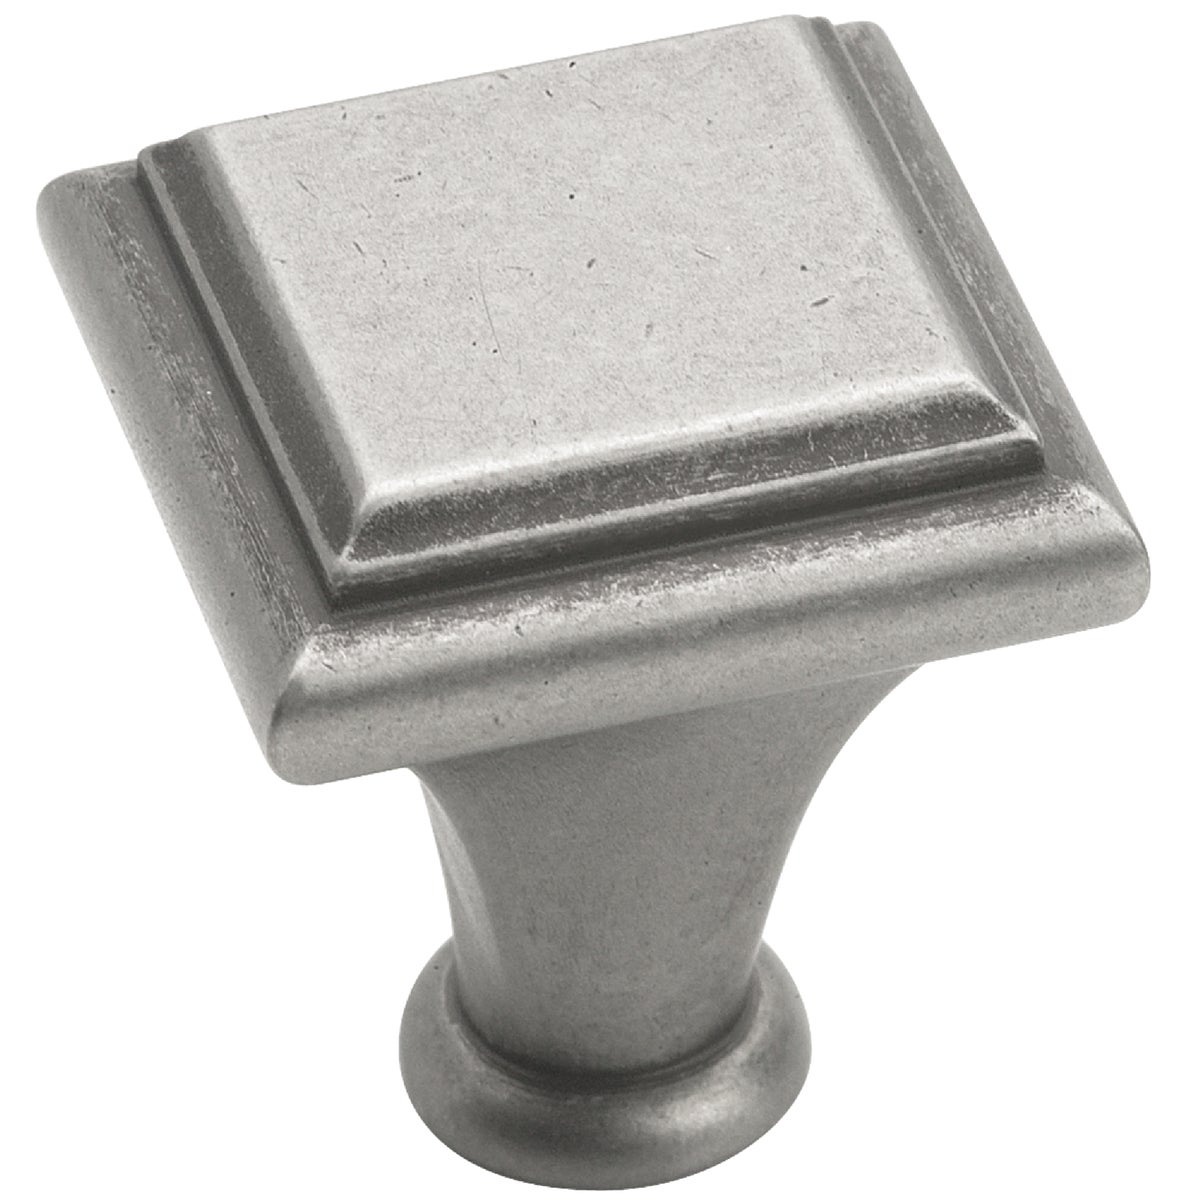 WEATHERED NICKEL KNOB - BP26131-WN by Amerock Corporation